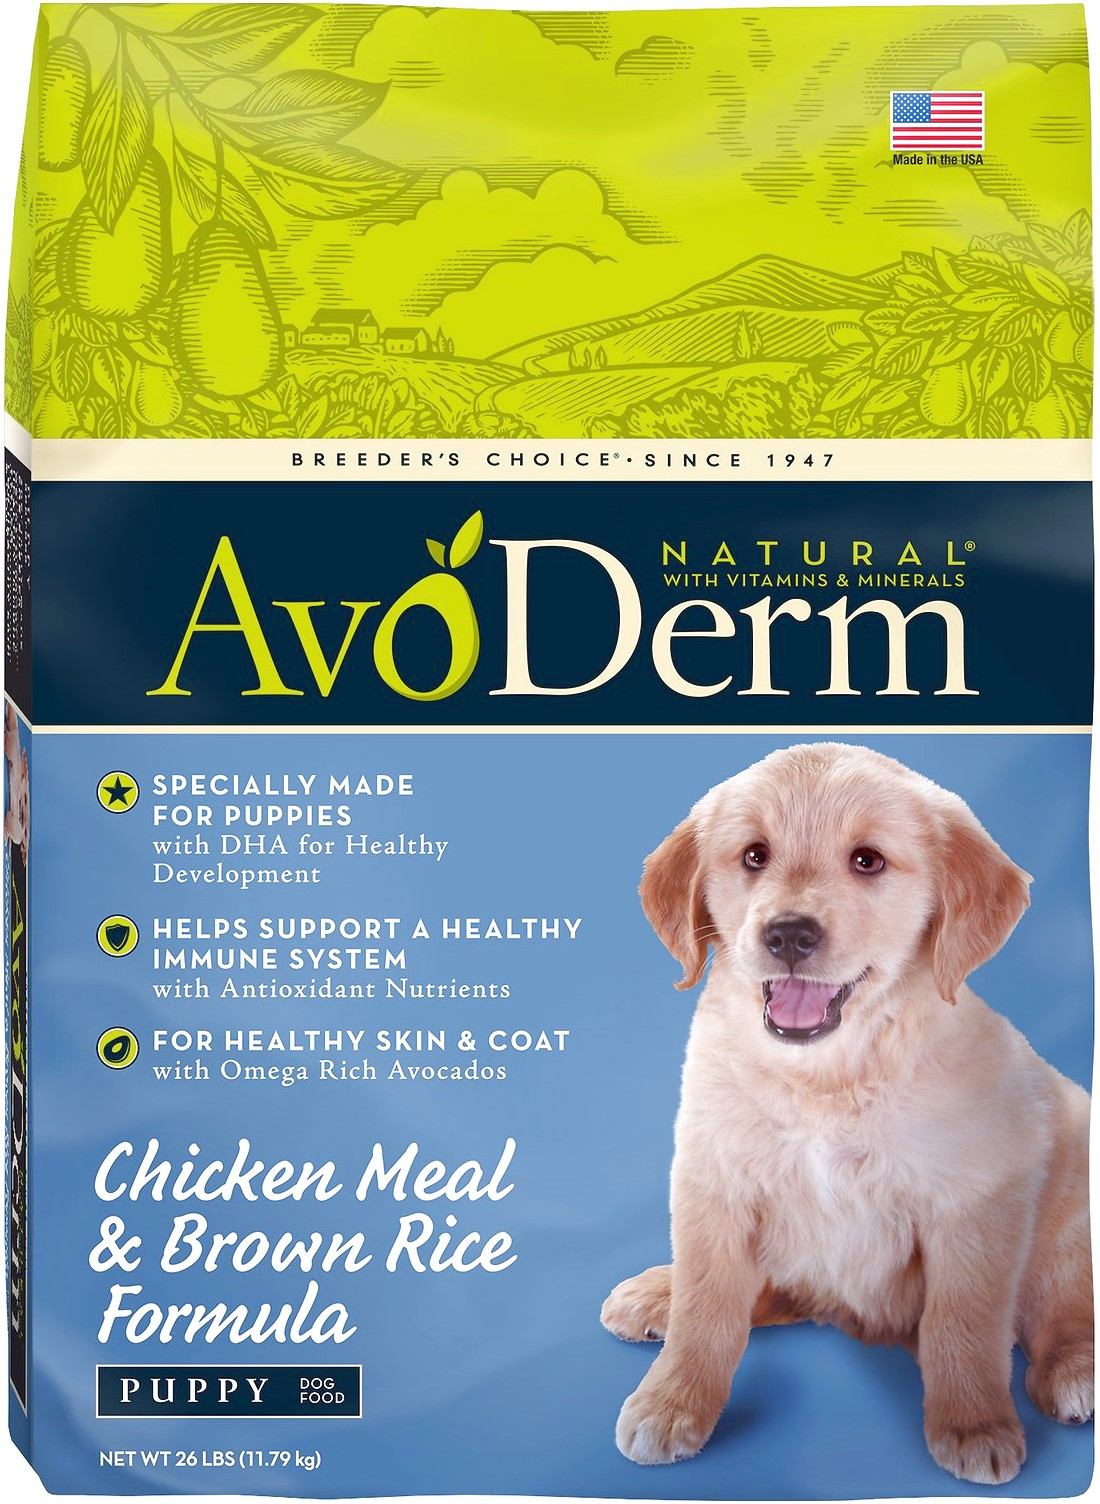 Avoderm Dog Food Reviews